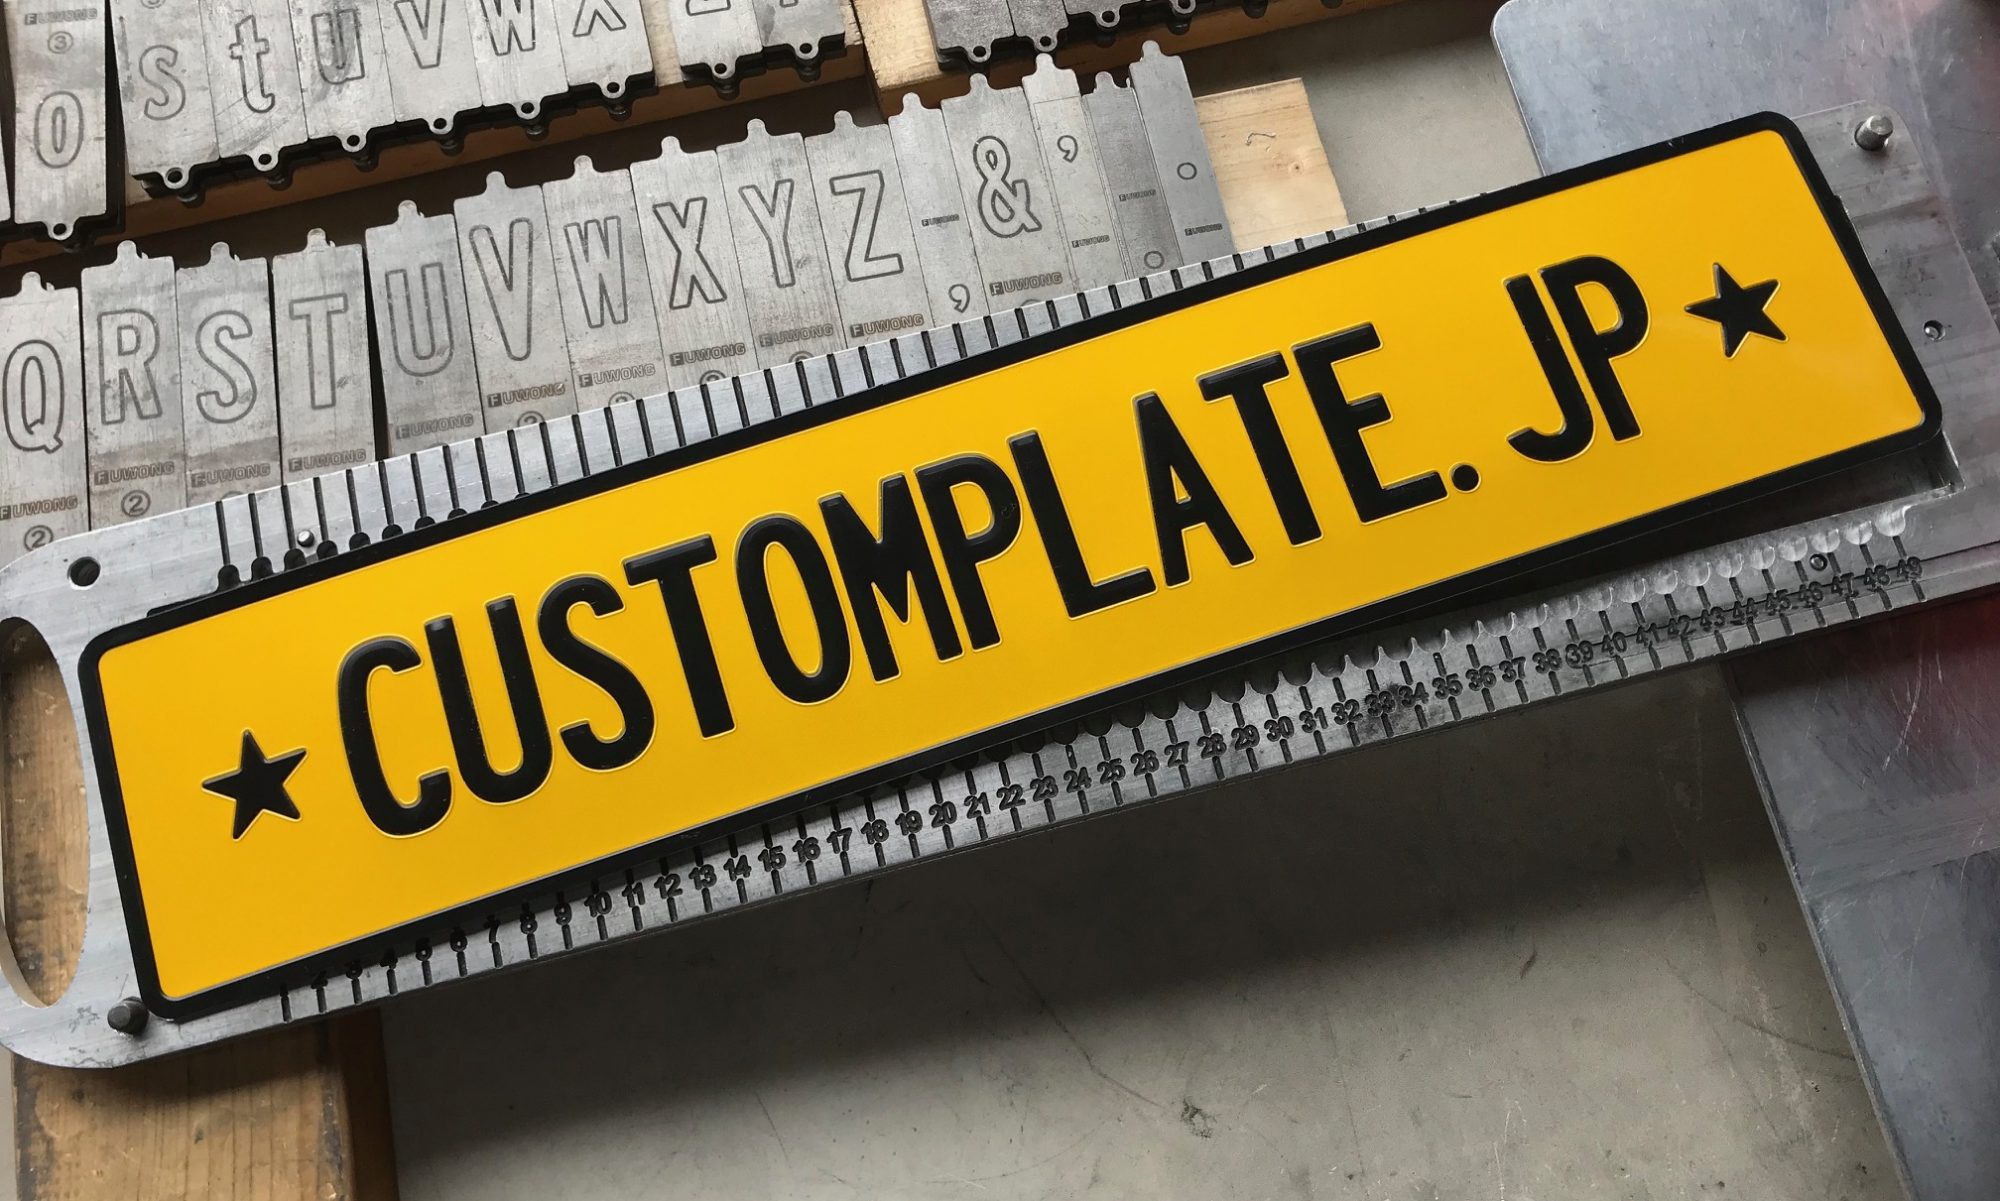 CUSTOMPLATE.JP